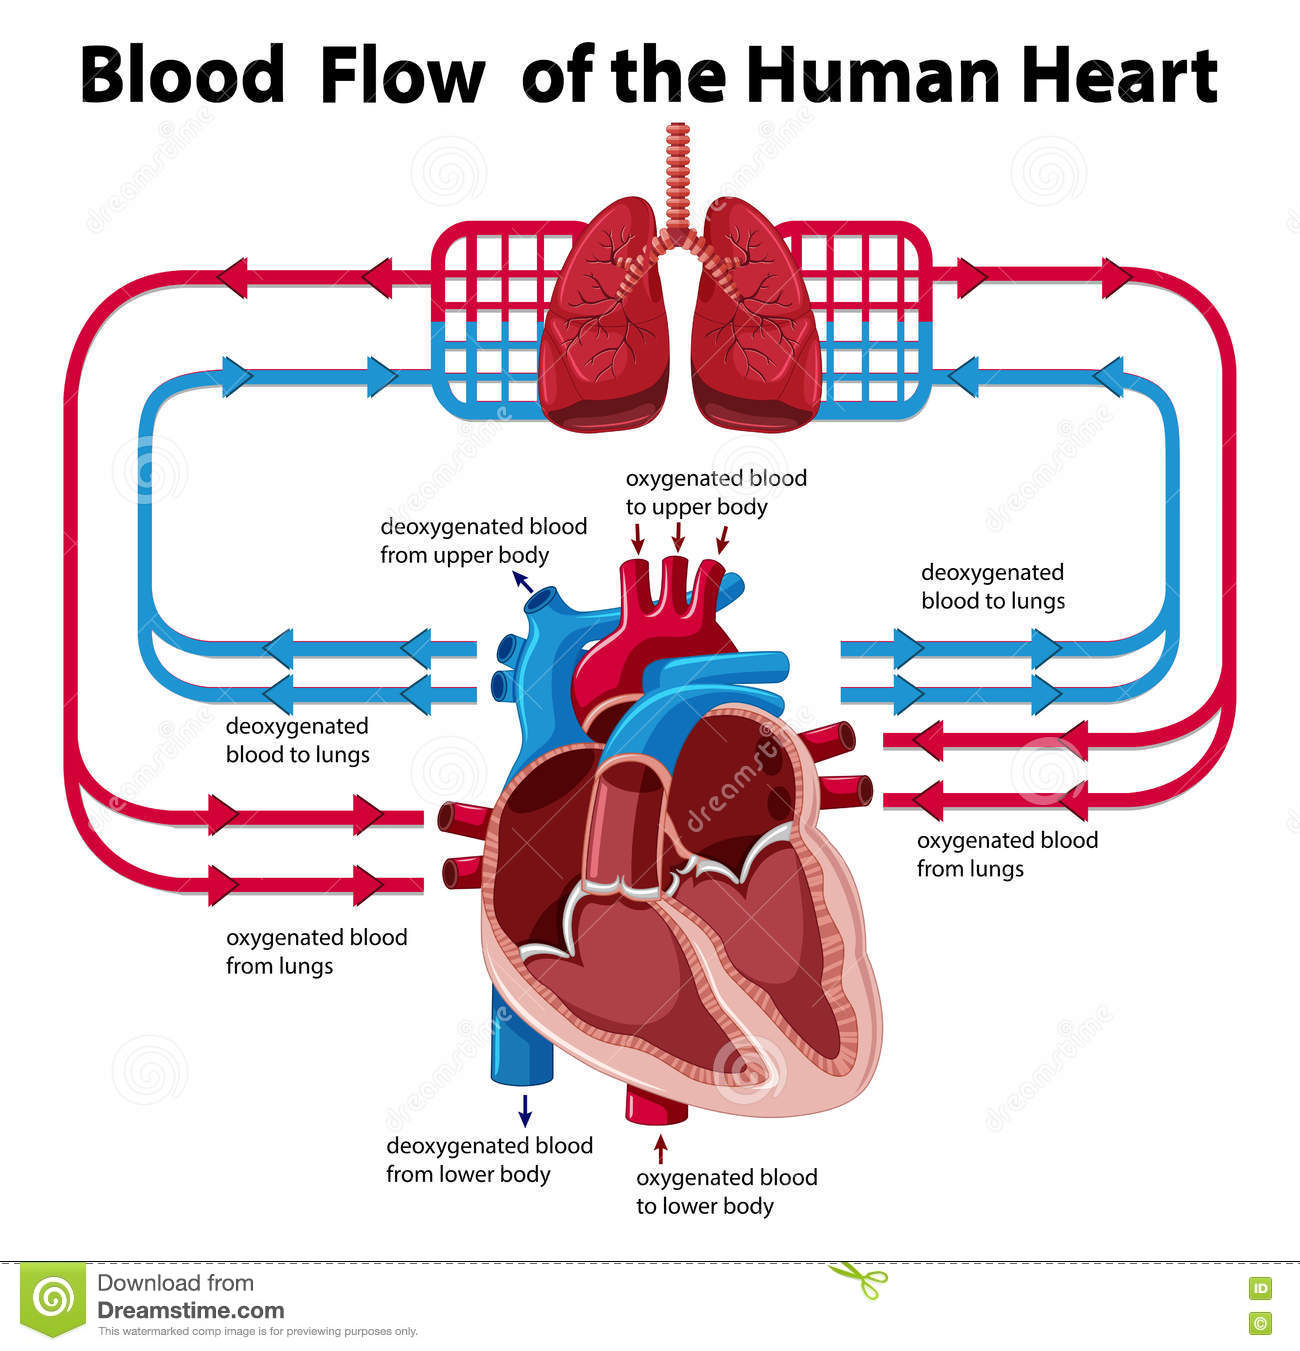 pathway of blood flow through the heart stock image - image: 19337291, Cephalic vein